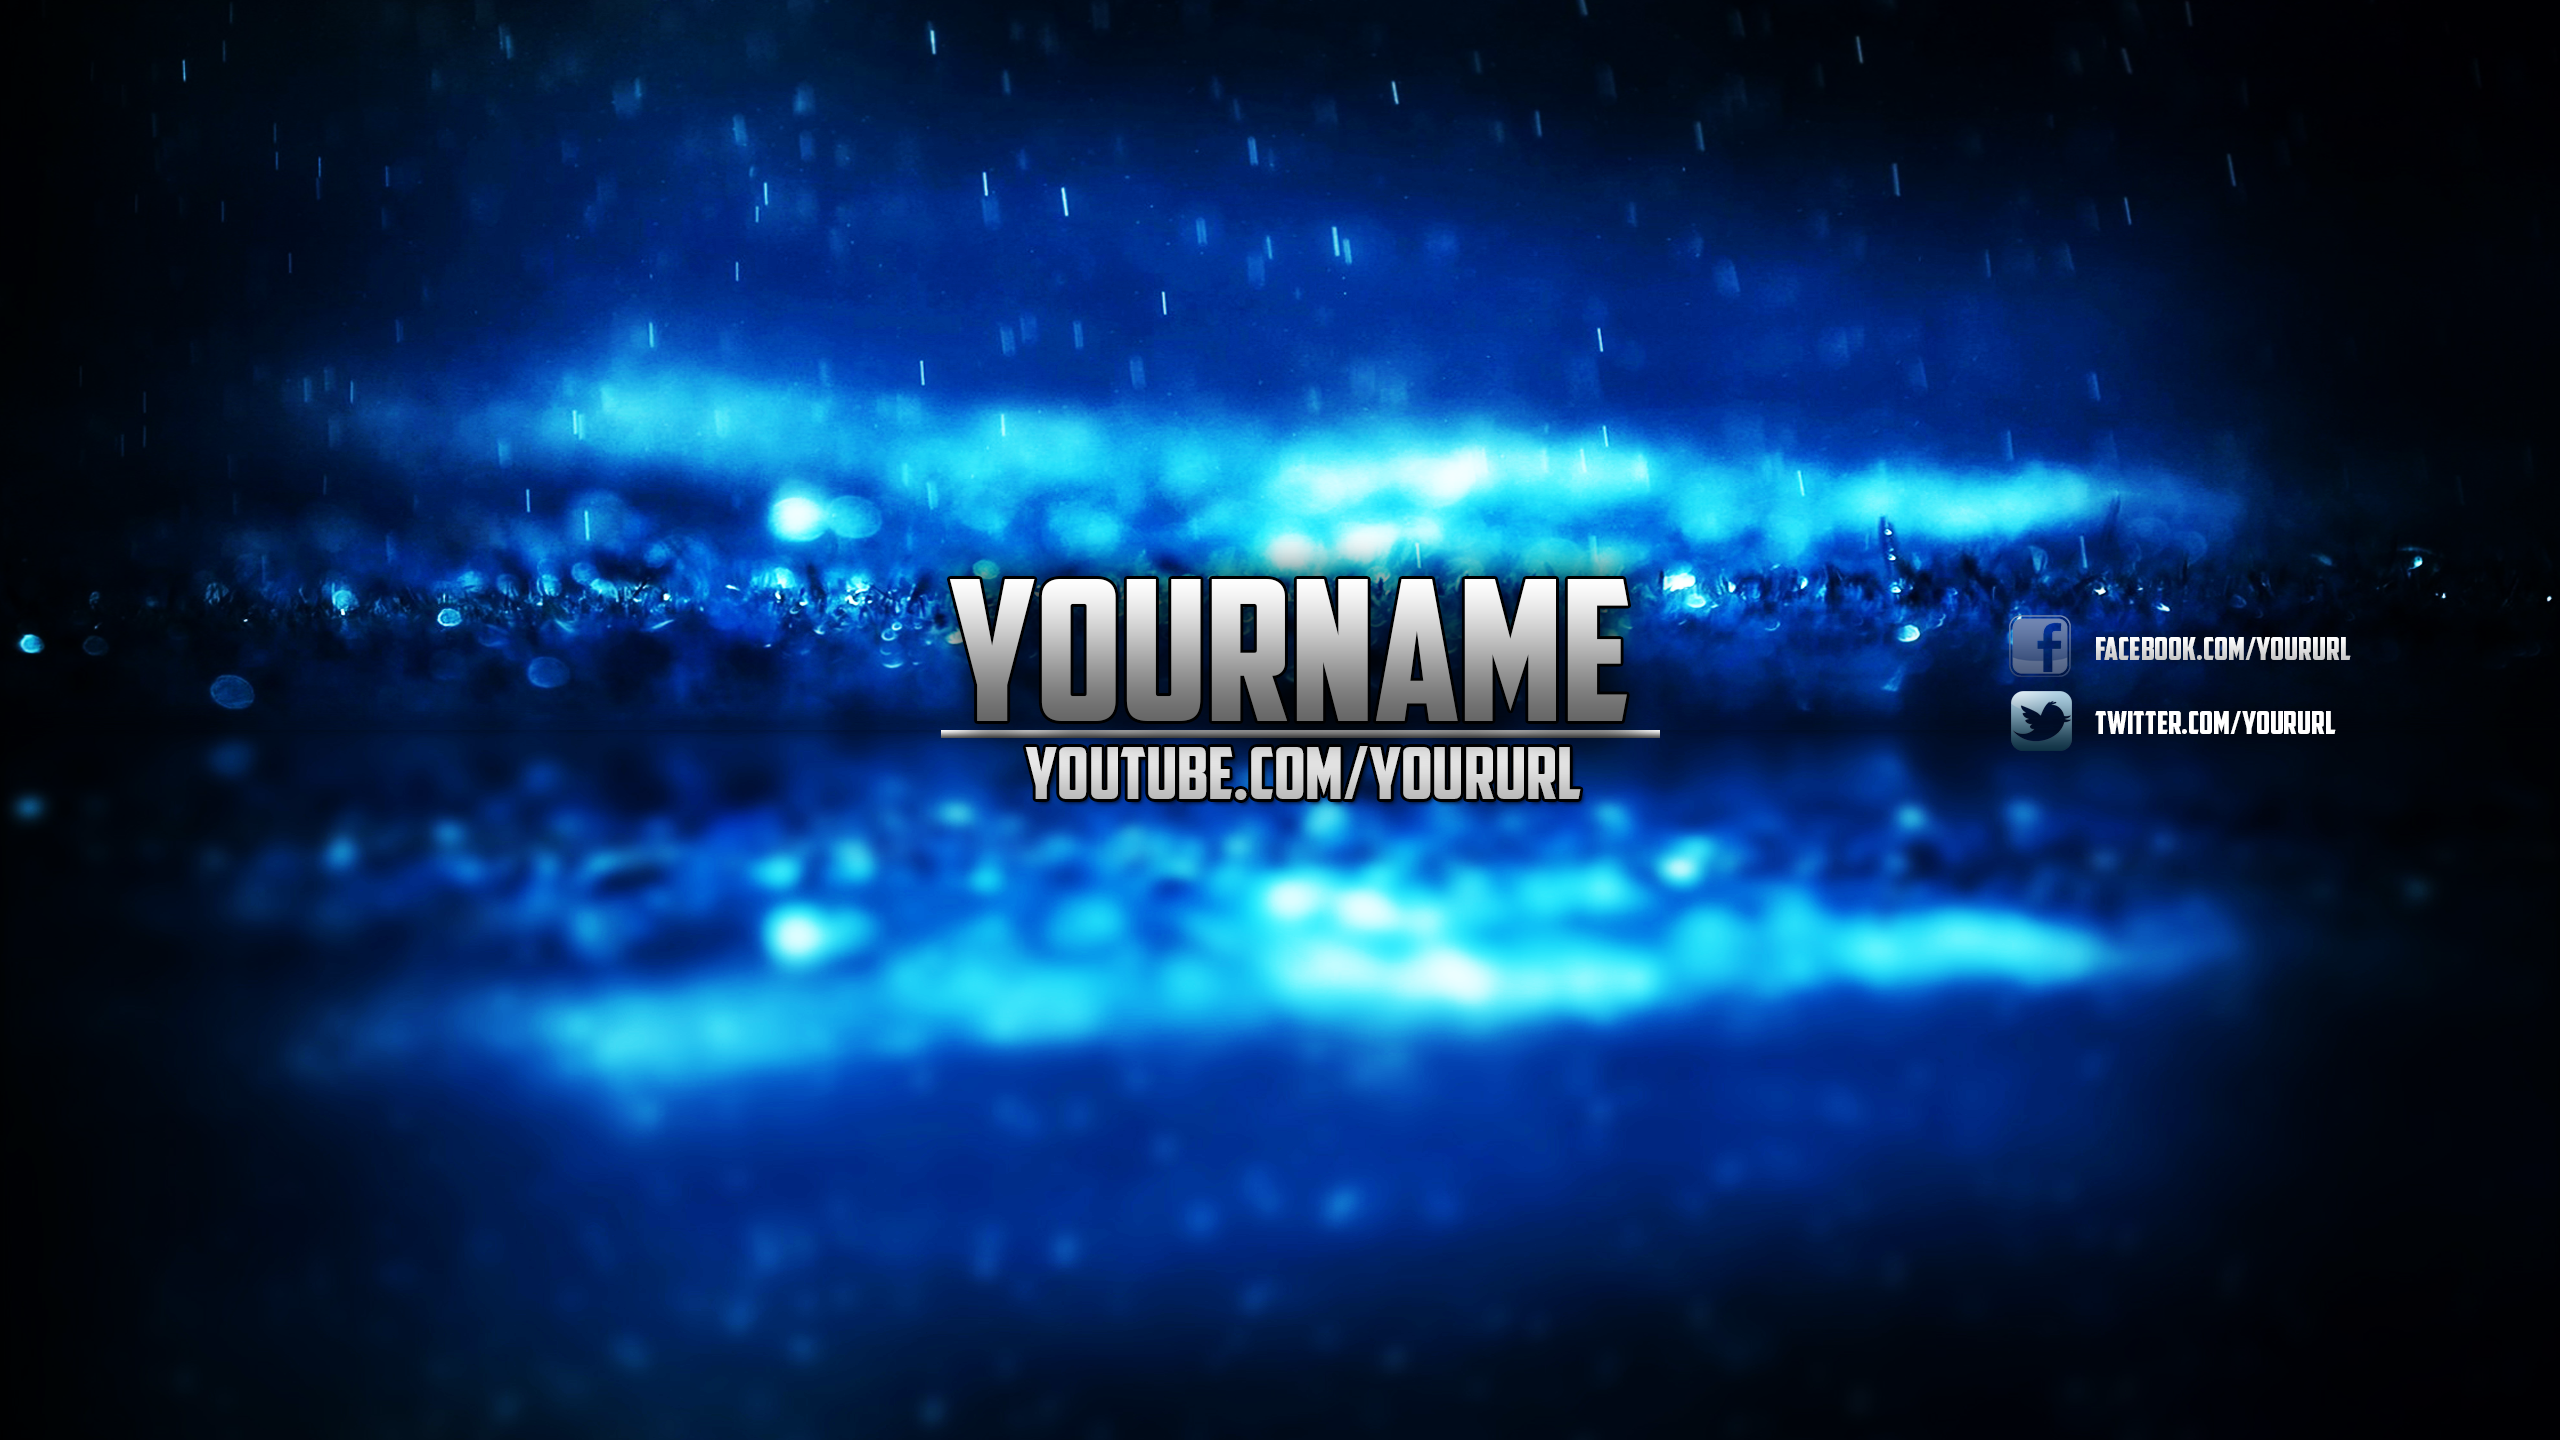 Blue Themed Youtube Cover Art Correct Size By Toomanyspoons On